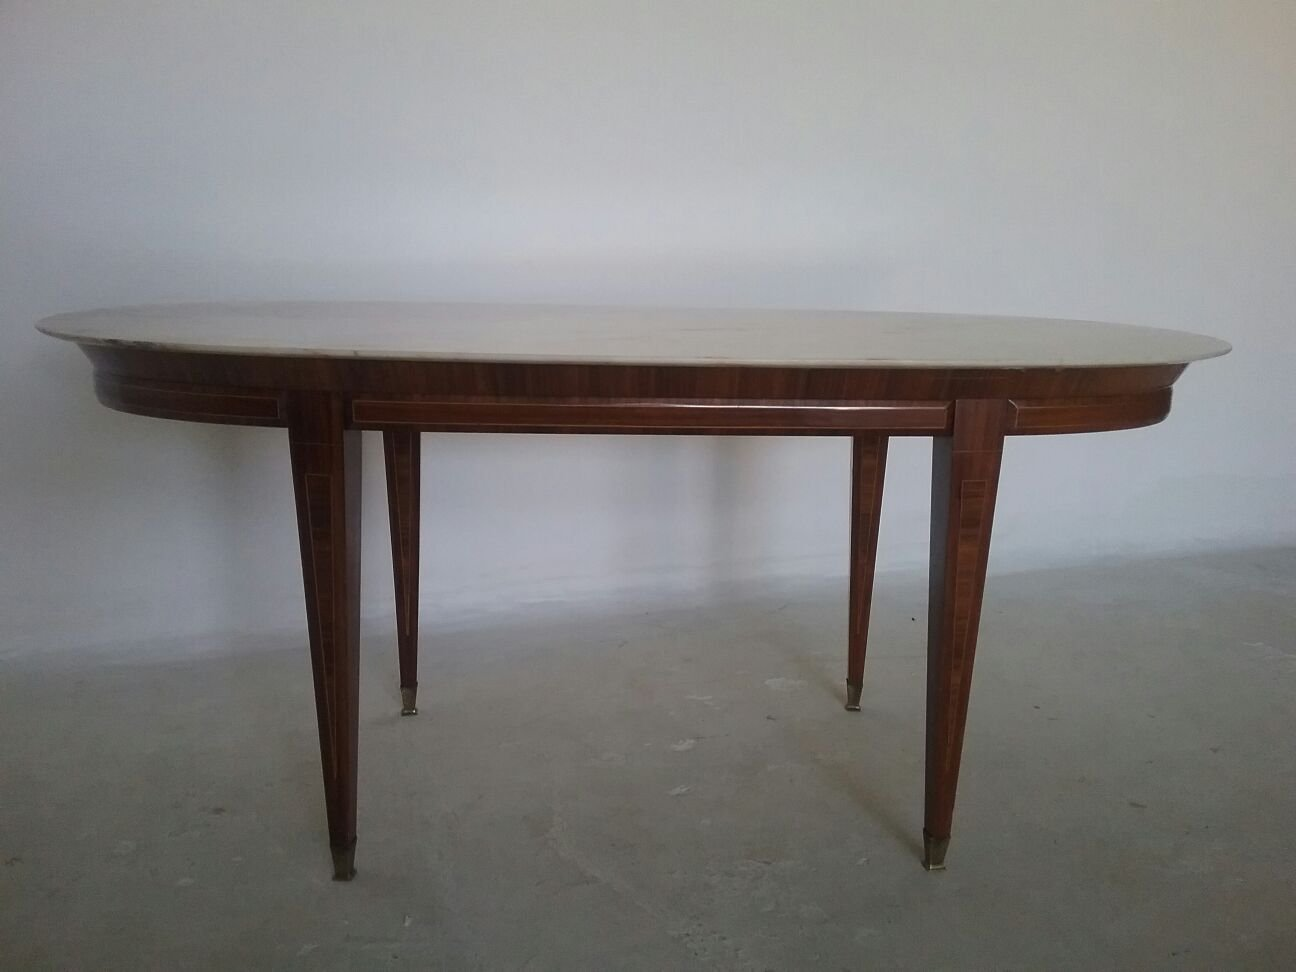 Vintage French Mahogany And Marble Dining Table 1970s Vinterior